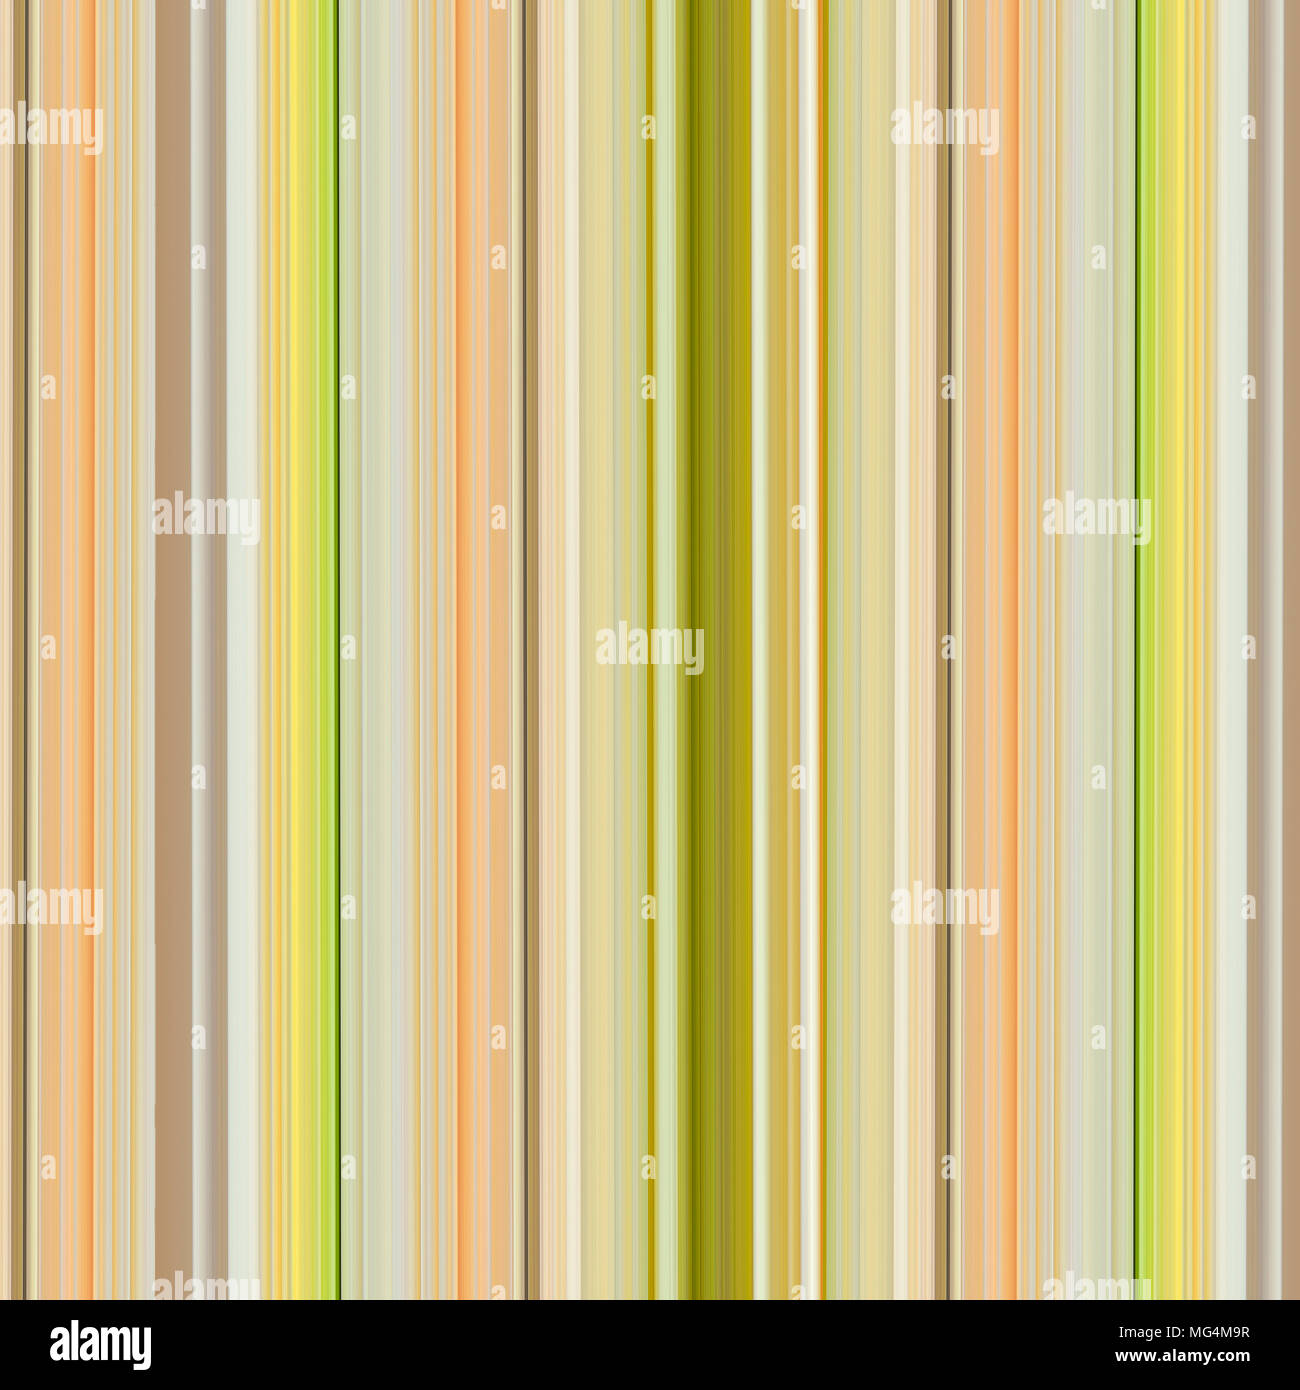 Multicolored Striped Cotton Or Linen Fabric Wrapping Paper Background Pattern In Yellow Green